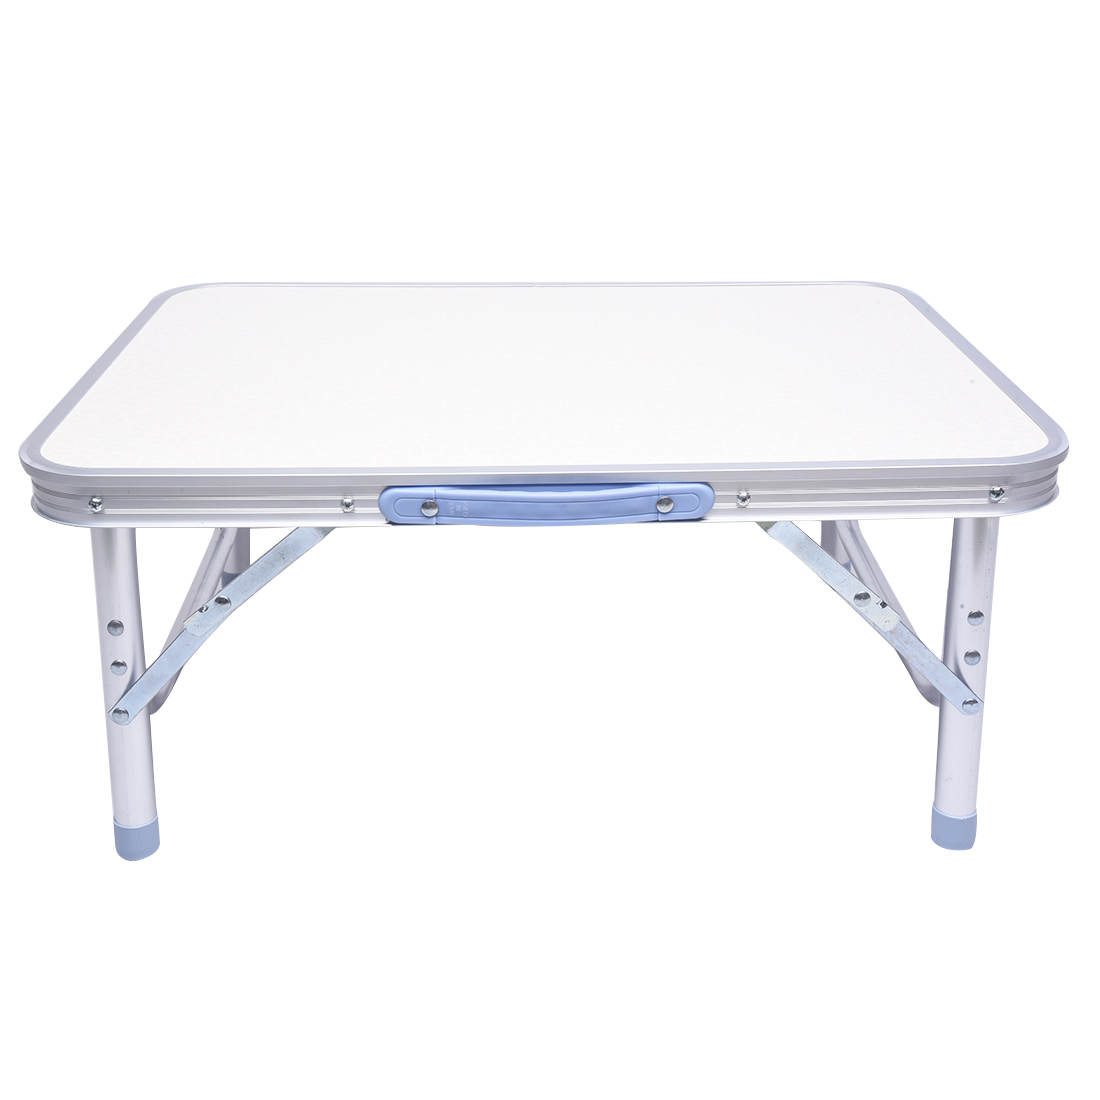 Mesa plegable portatil mesa de aluminio de camping al aire for Mesa plegable portatil